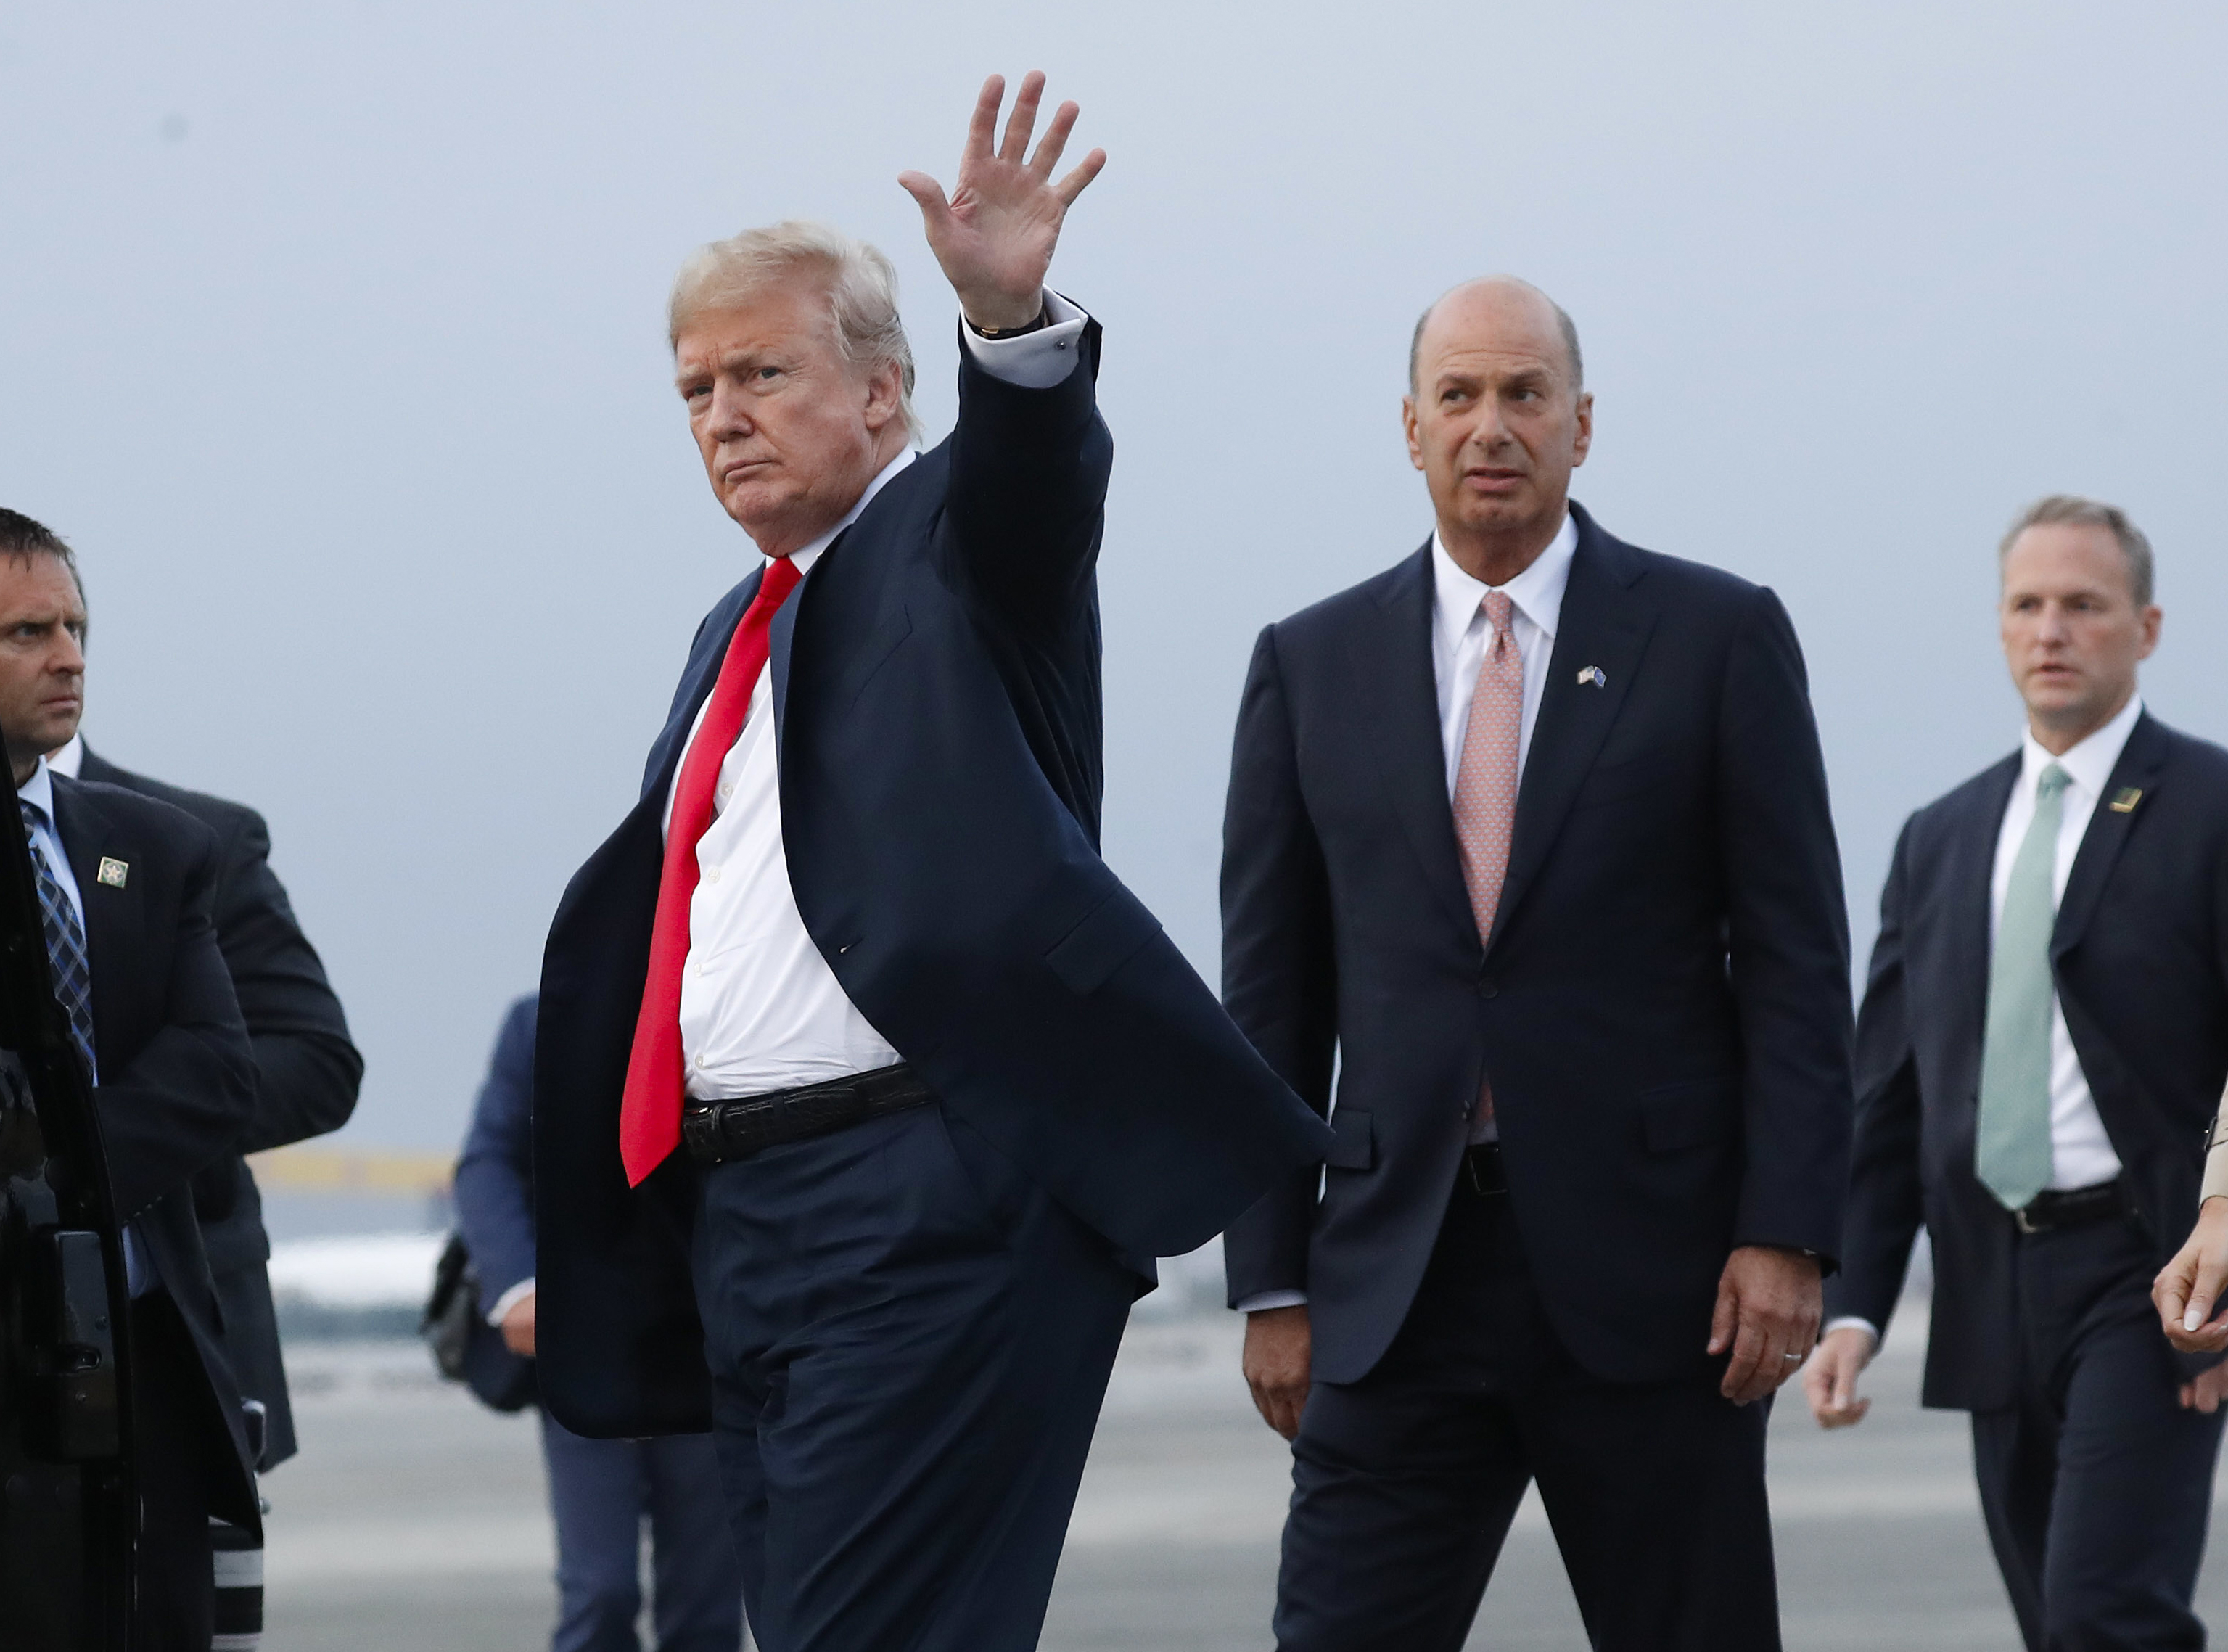 President Donald Trump with Gordon Sondland, the U.S. ambassador to the European Union, arriving at Melsbroek Air Base, in Brussels, Belgium, in July 2018.